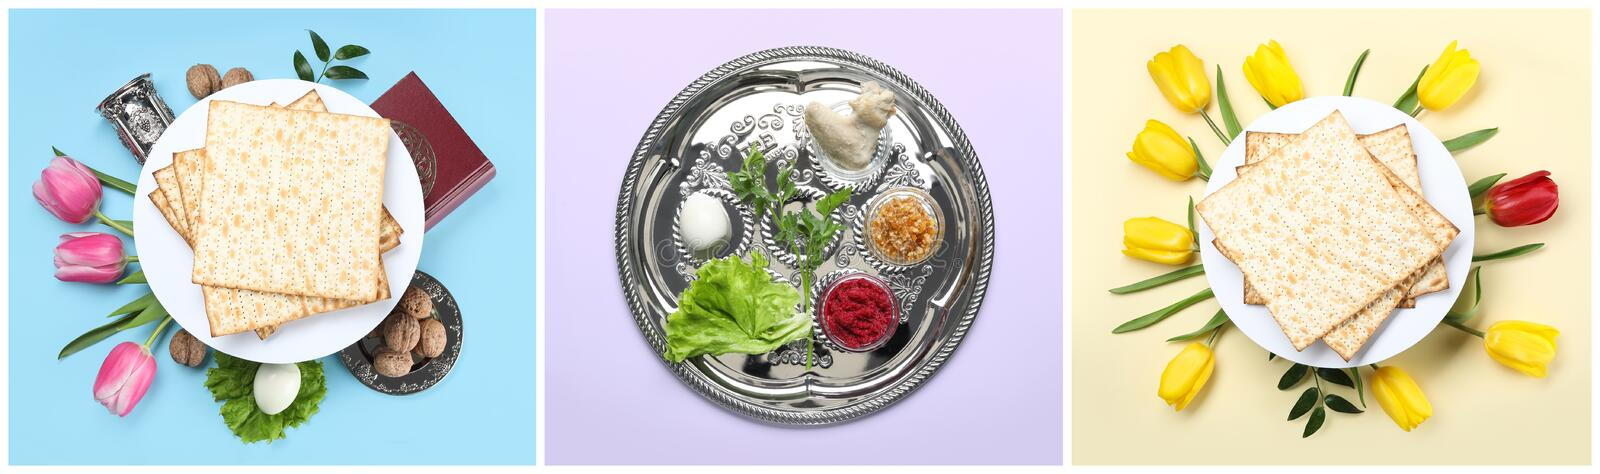 Collage of symbolic Passover Pesach meal and dishware on color background. Top view royalty free stock image